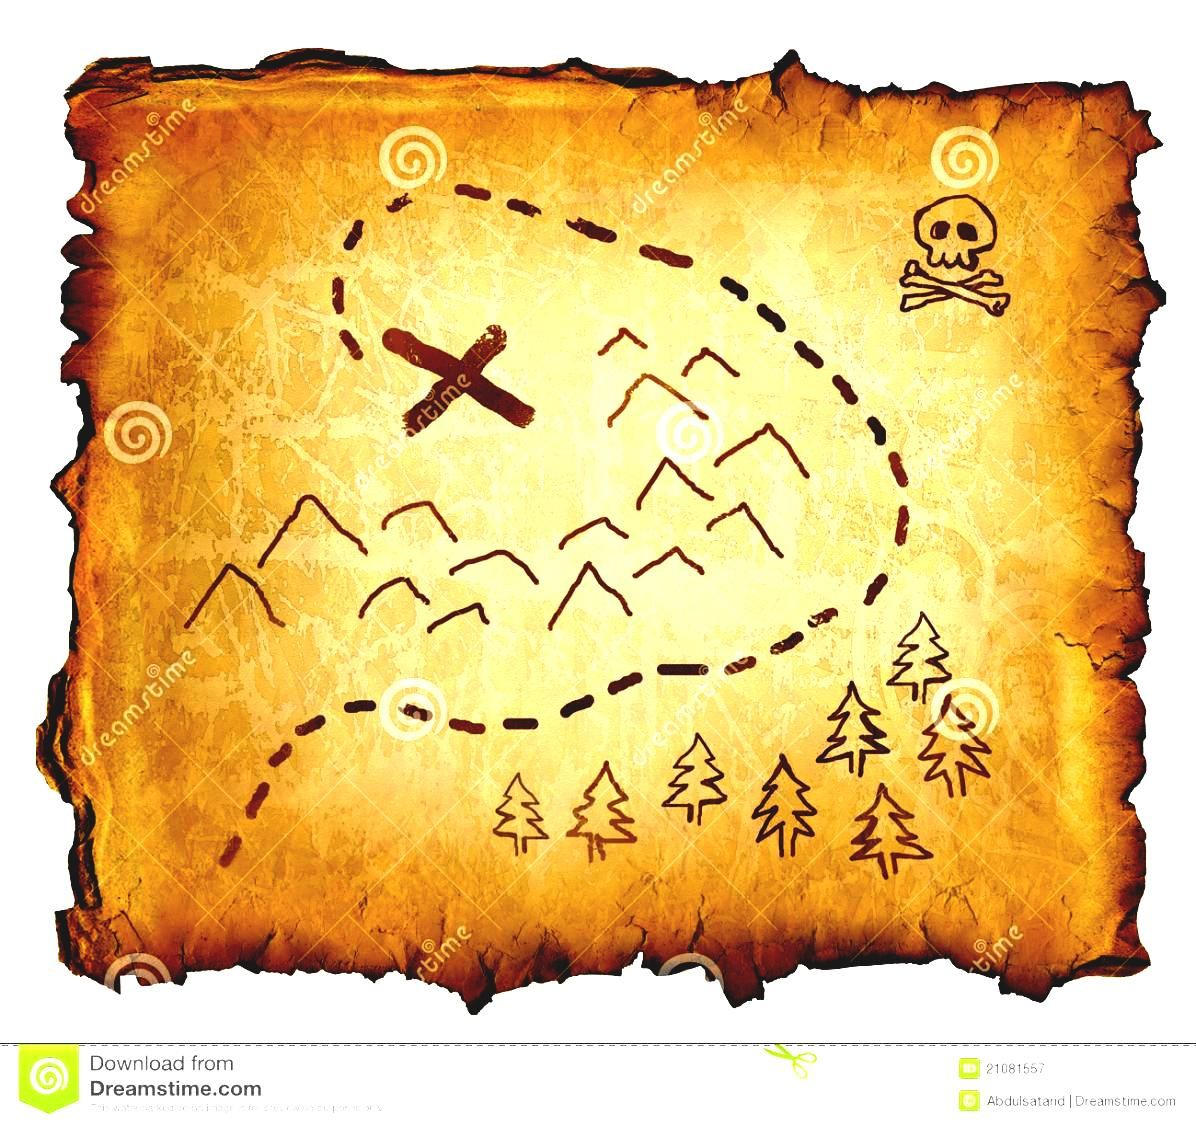 Blank treasure map clipart royalty free stock photo image pirate blank treasure map clipart royalty free stock photo image pirate gumiabroncs Images